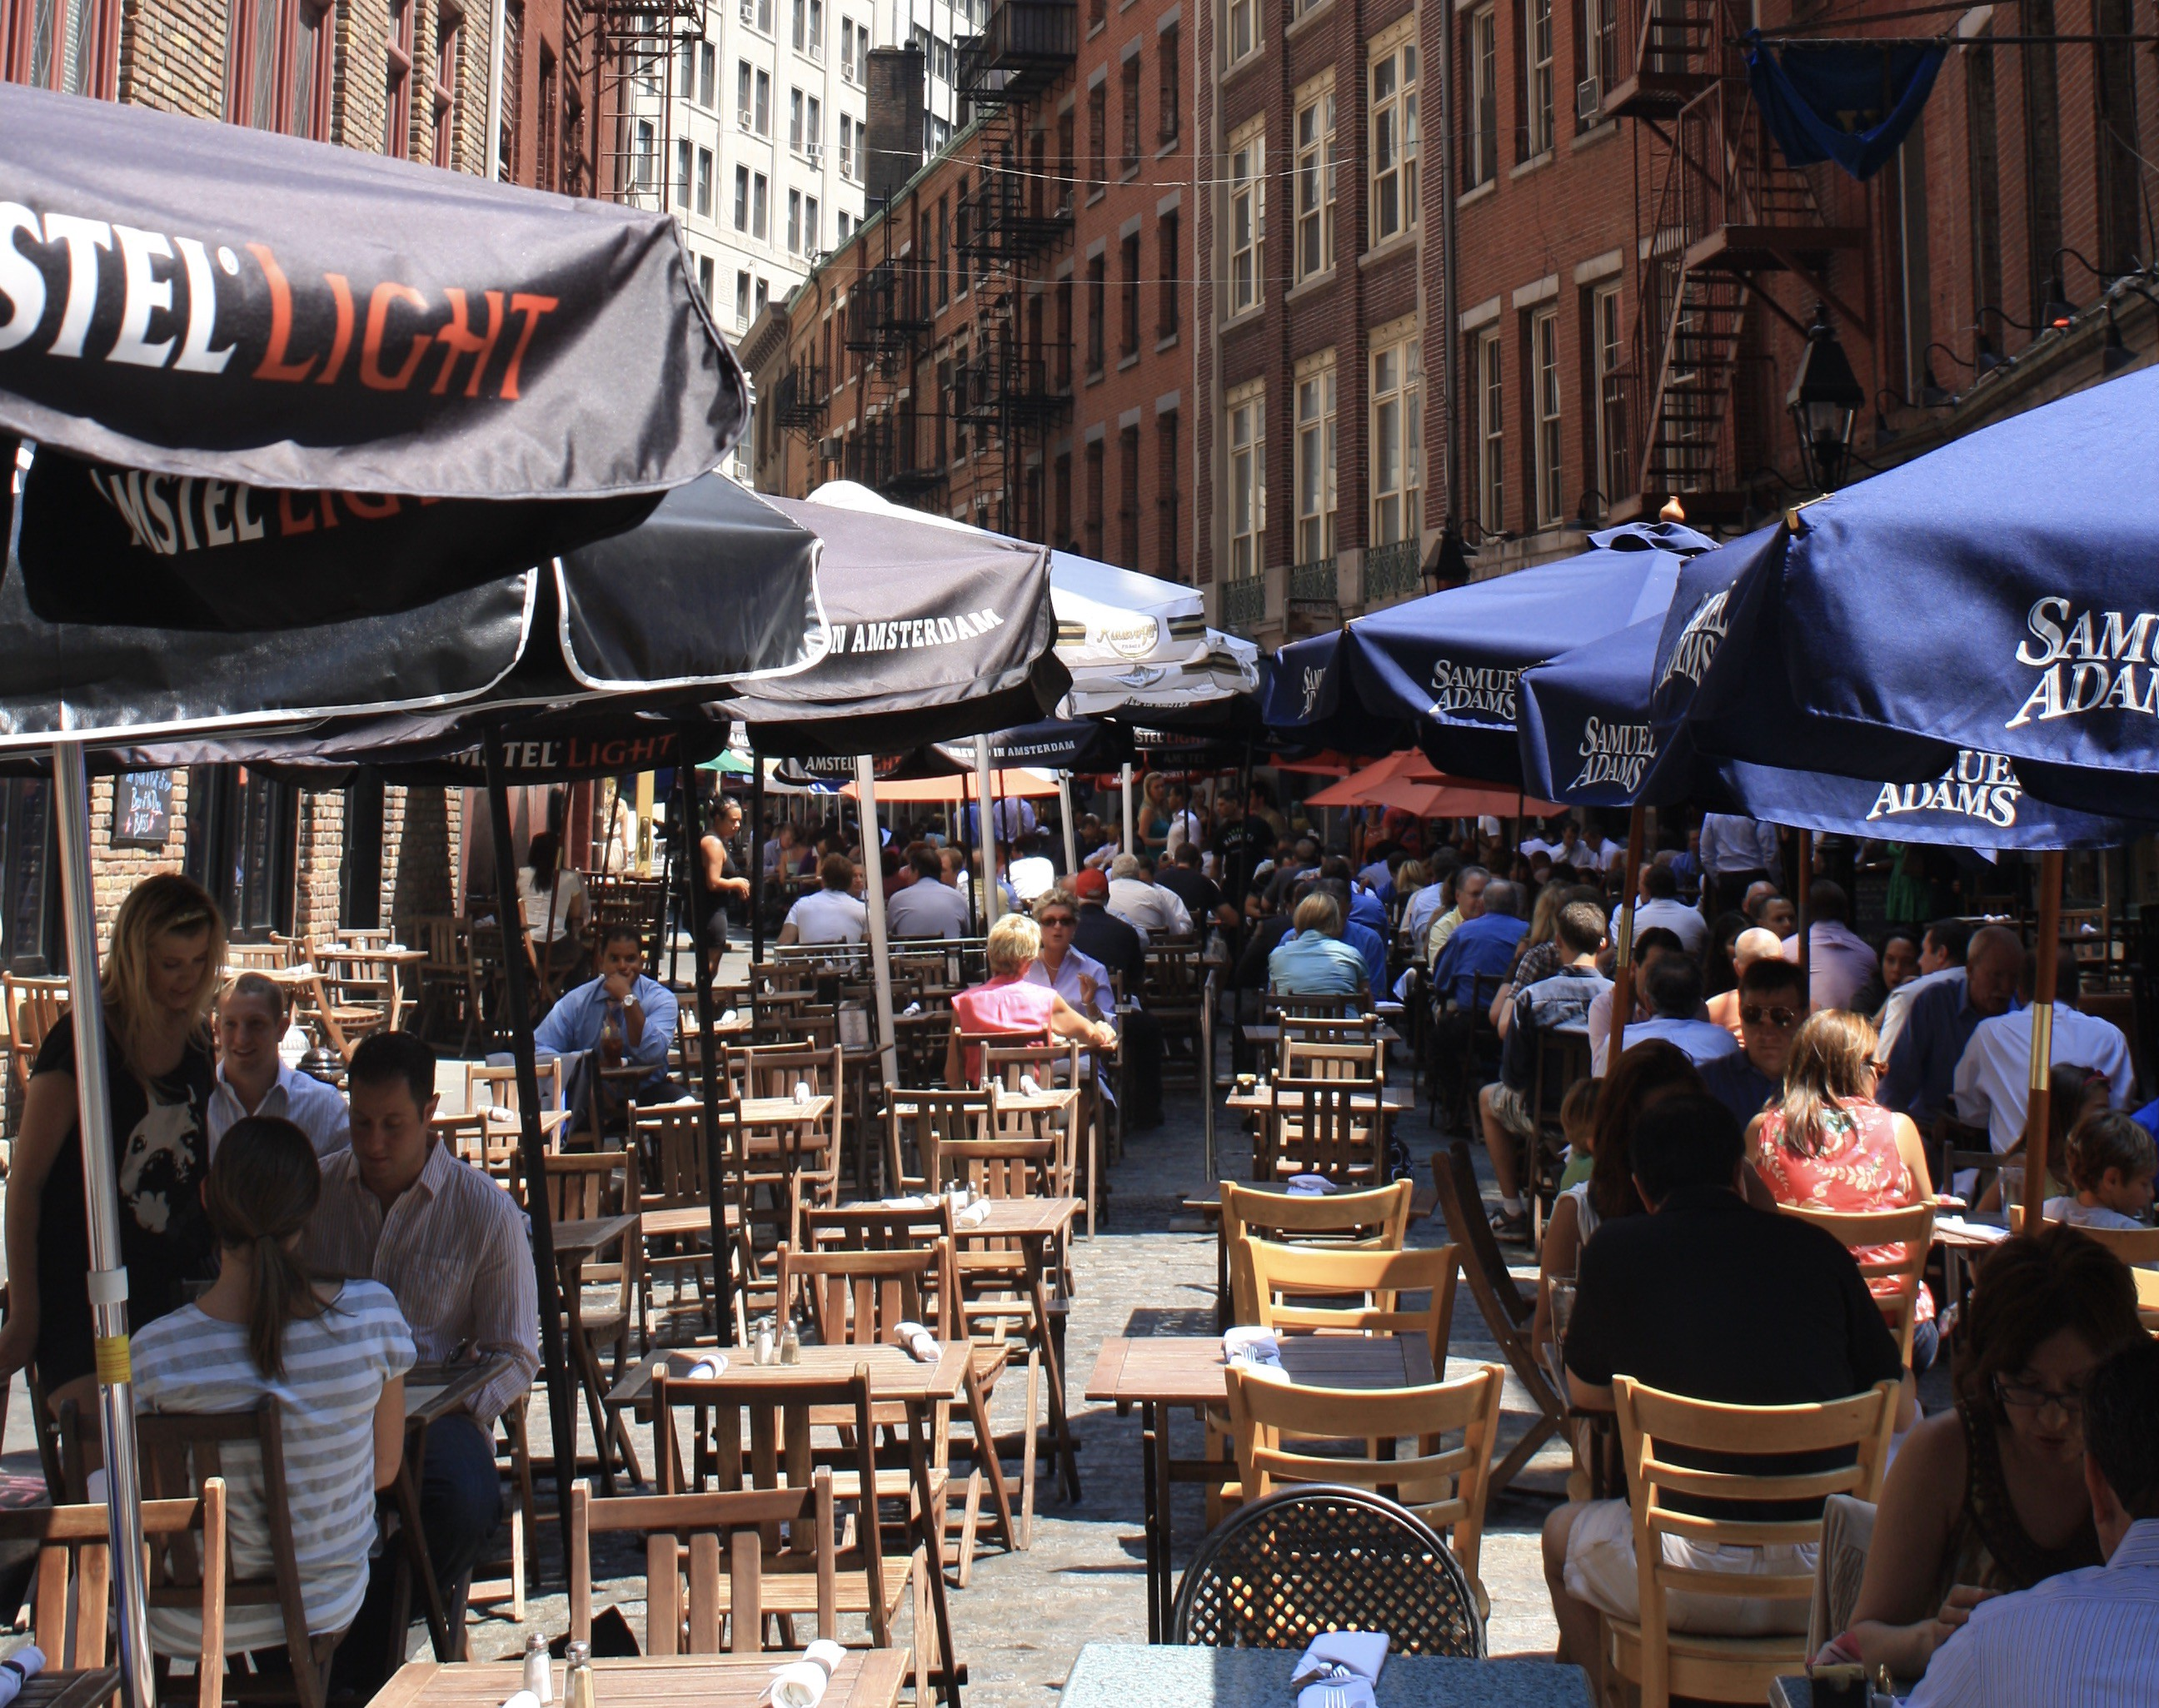 Stone Street, a place for pedestrians, before COVID 19